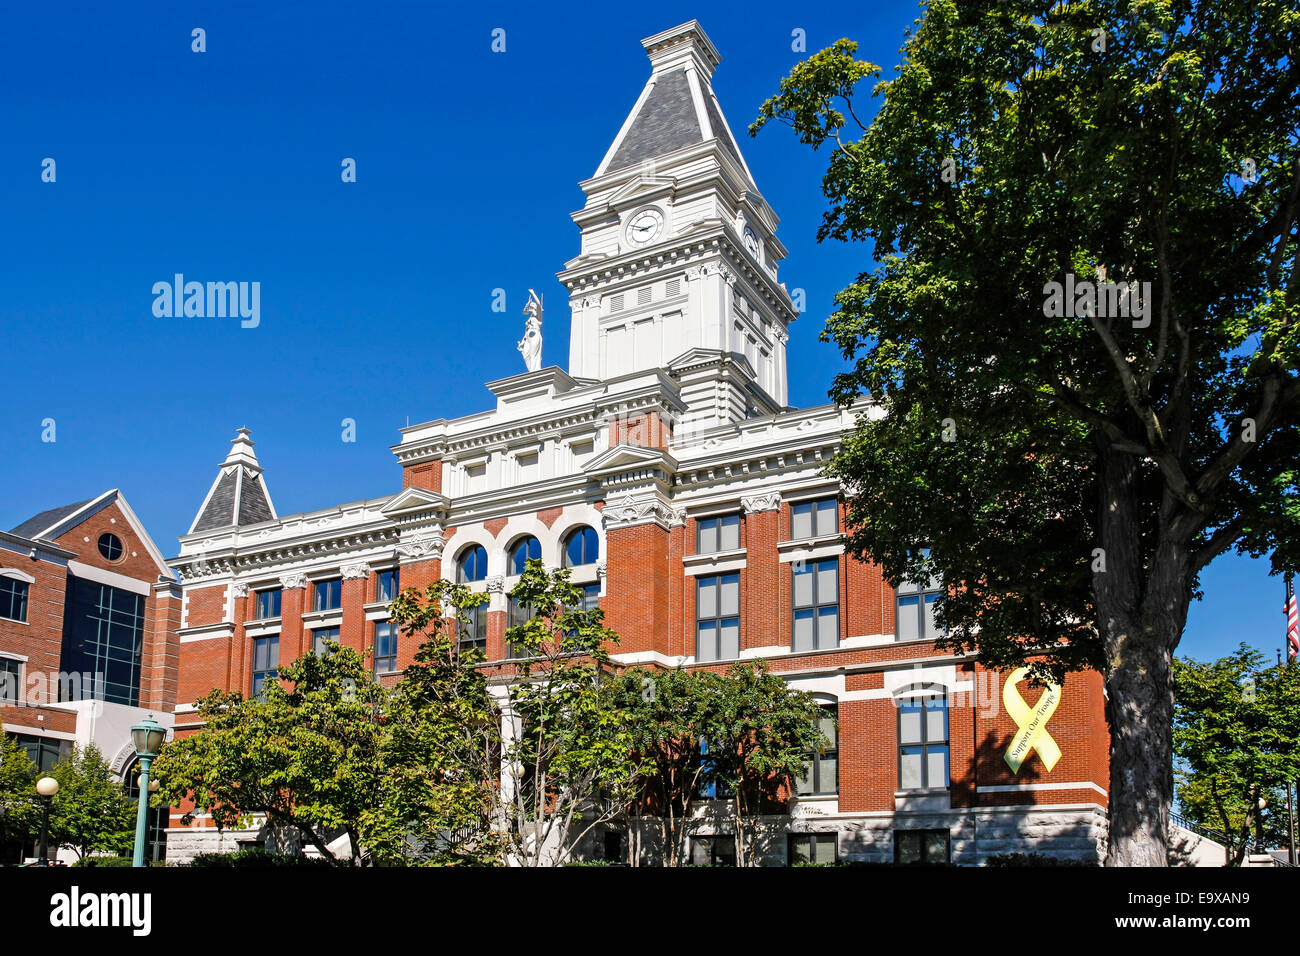 The Montgomery County Courthouse building in Clarksville TN - Stock Image